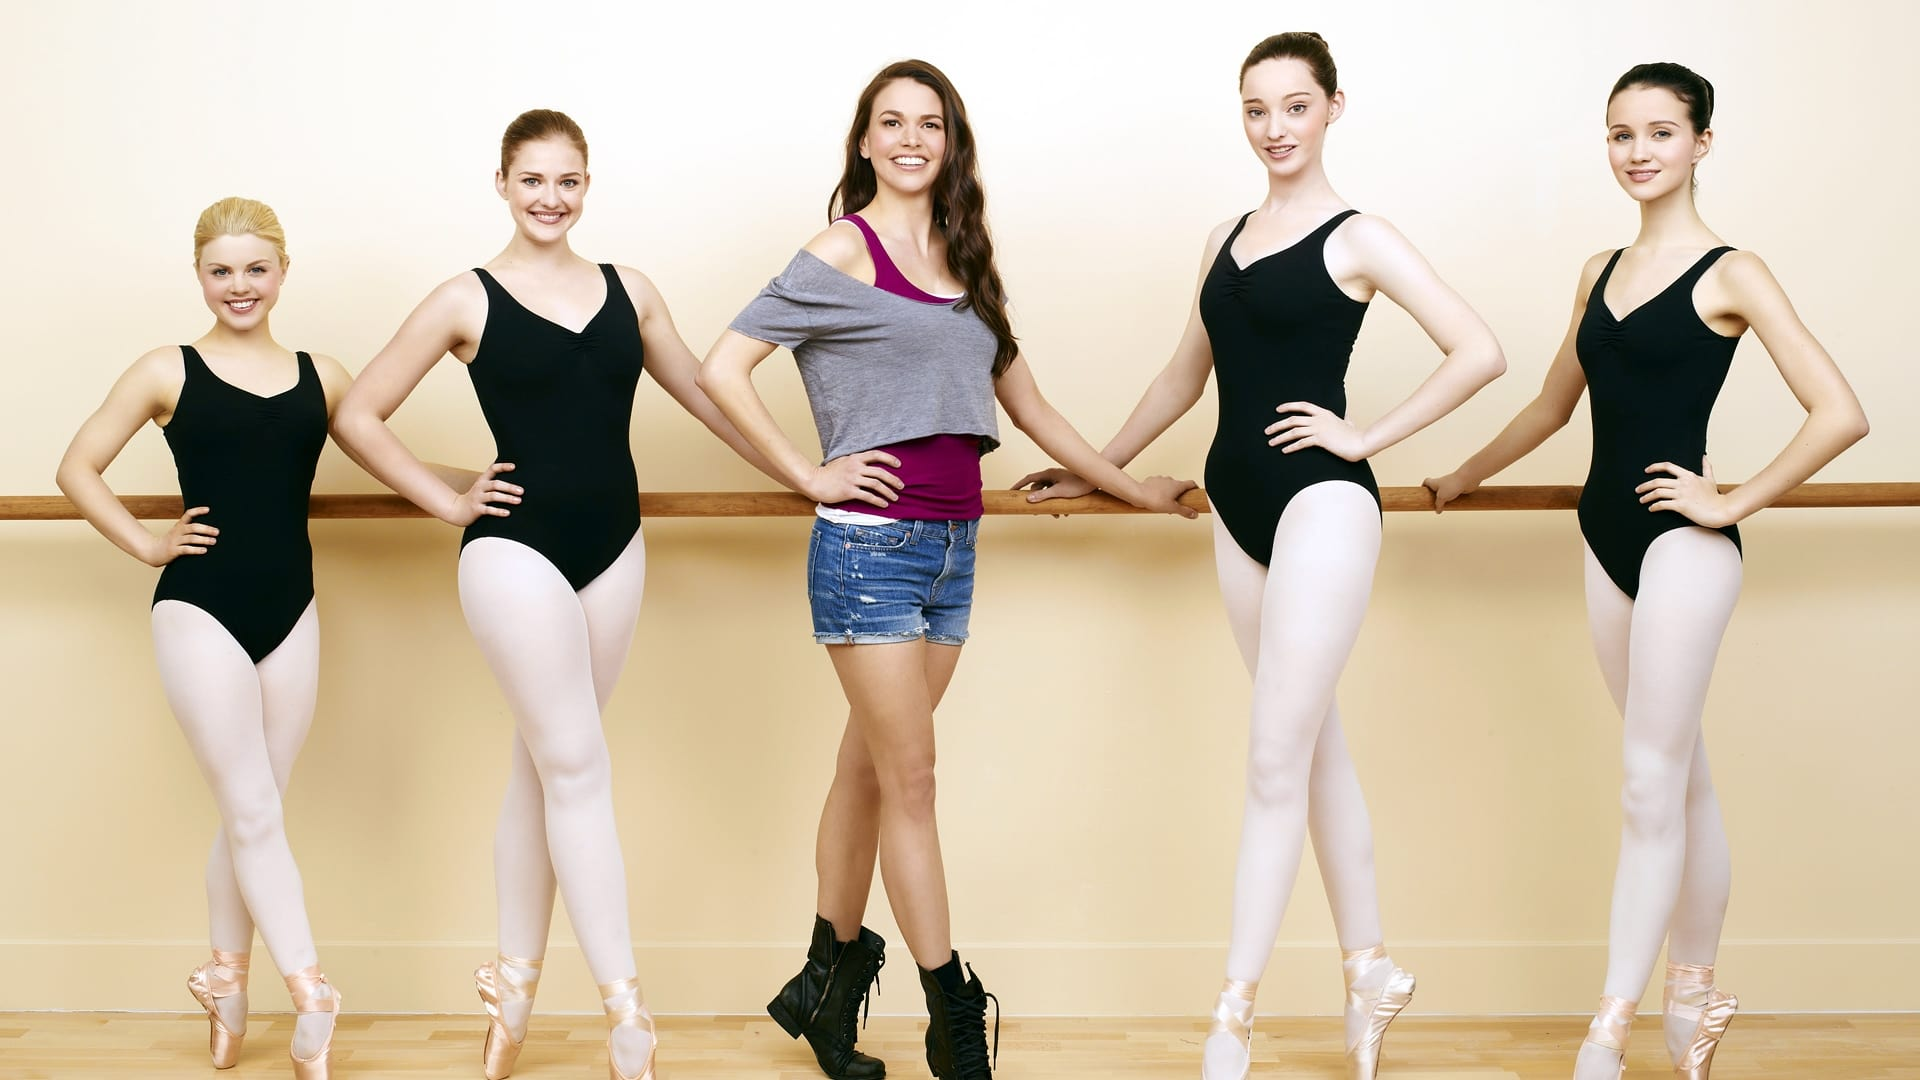 Bunheads is no more